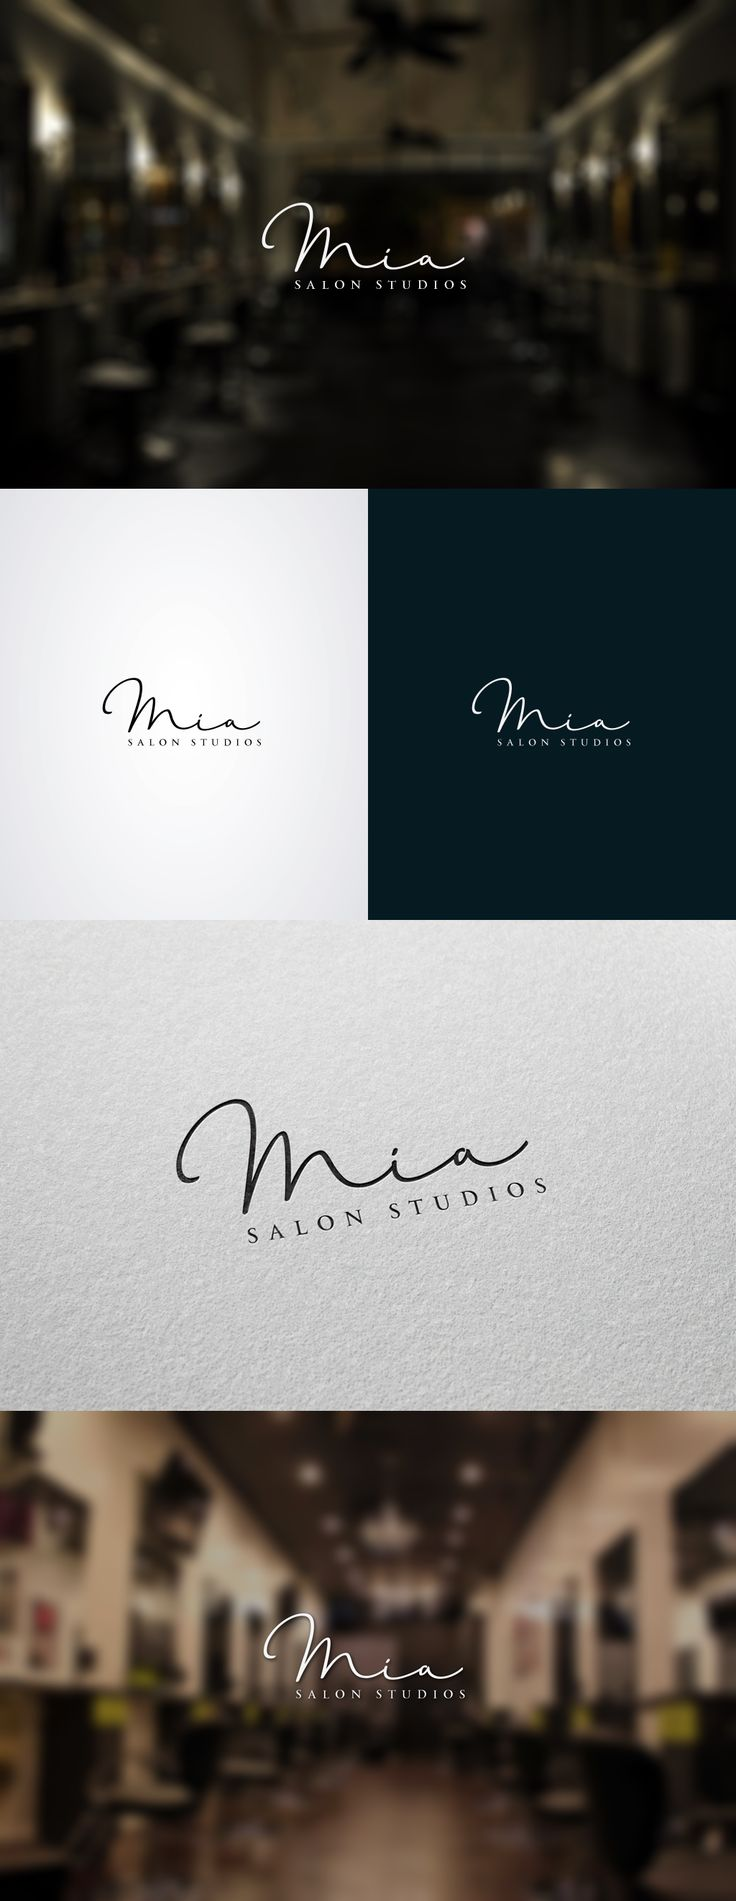 New salon studios startup needs a logo!